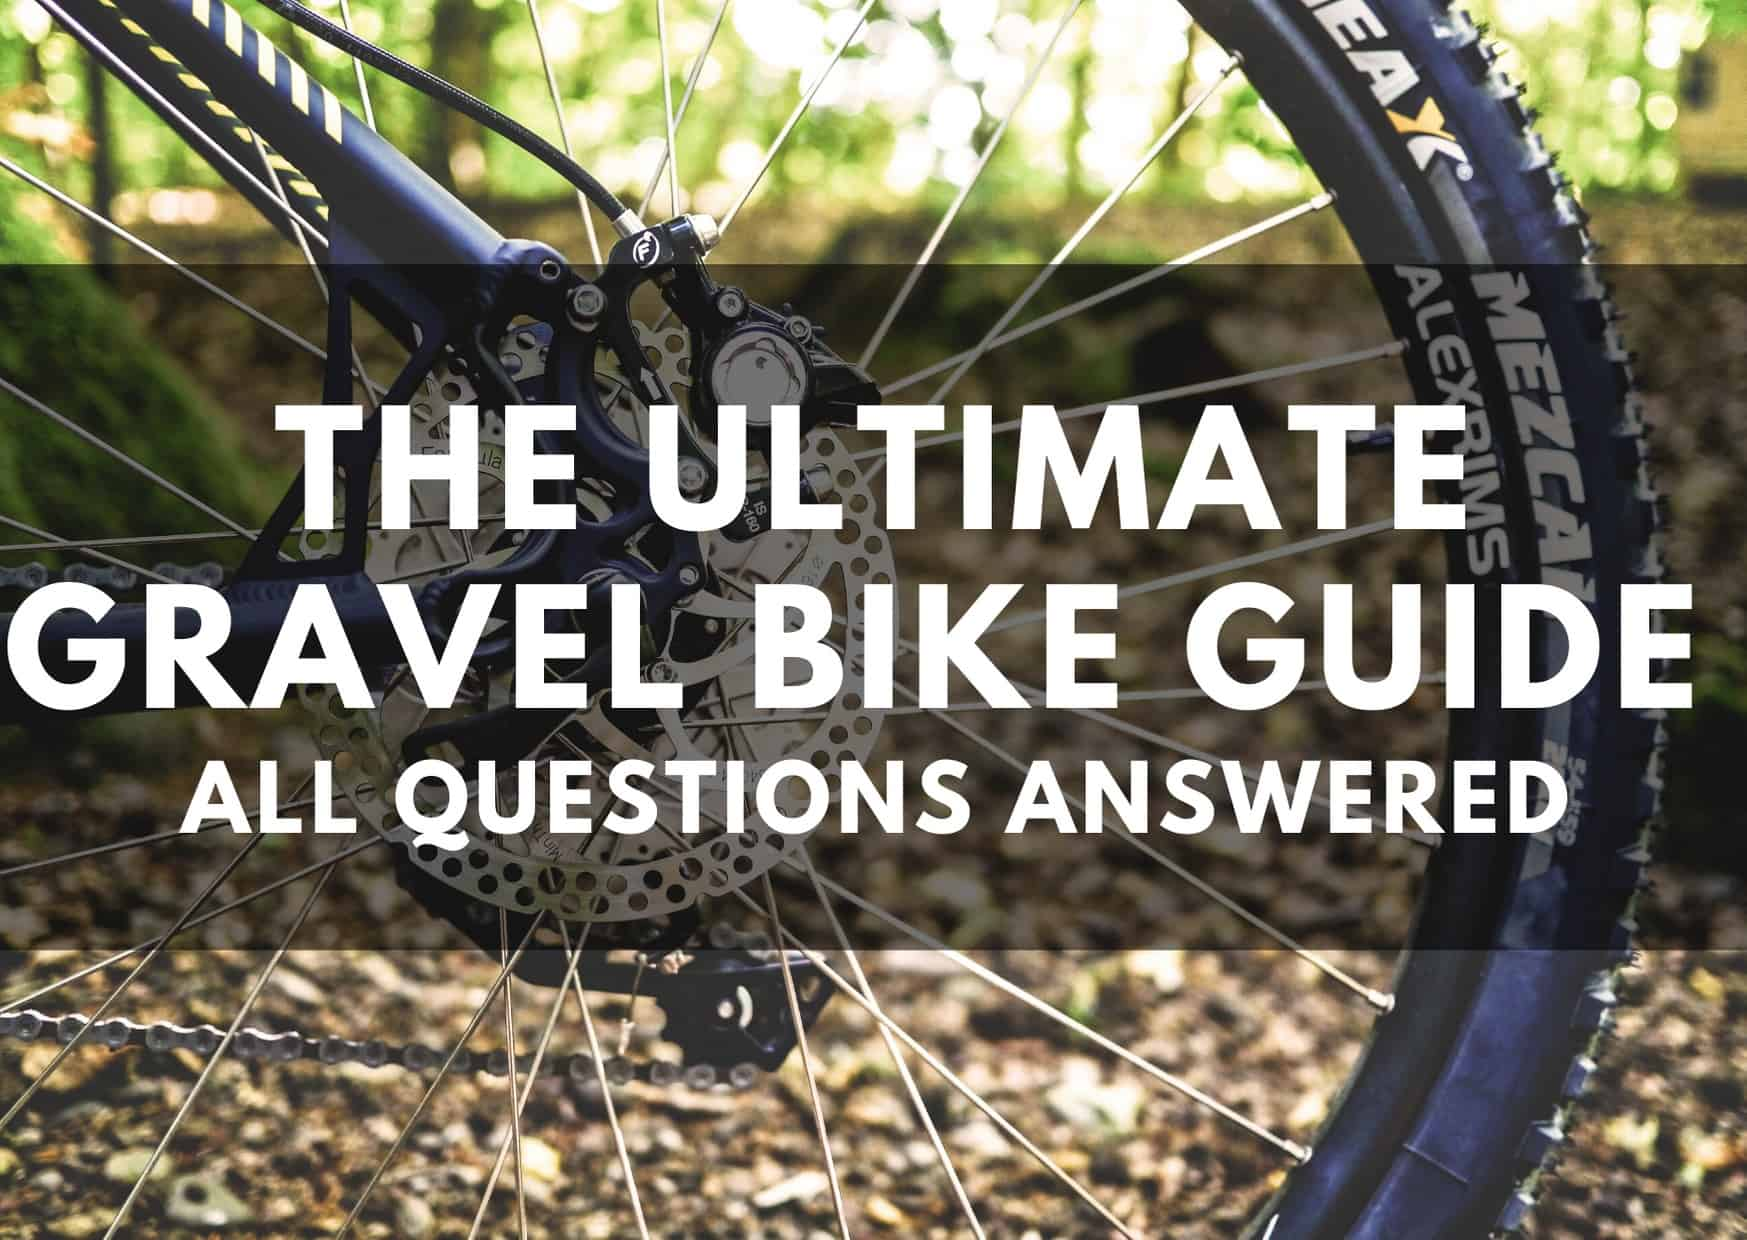 [2020 NEW] The Ultimate Gravel Bike Guide - All questions answered thumbnail